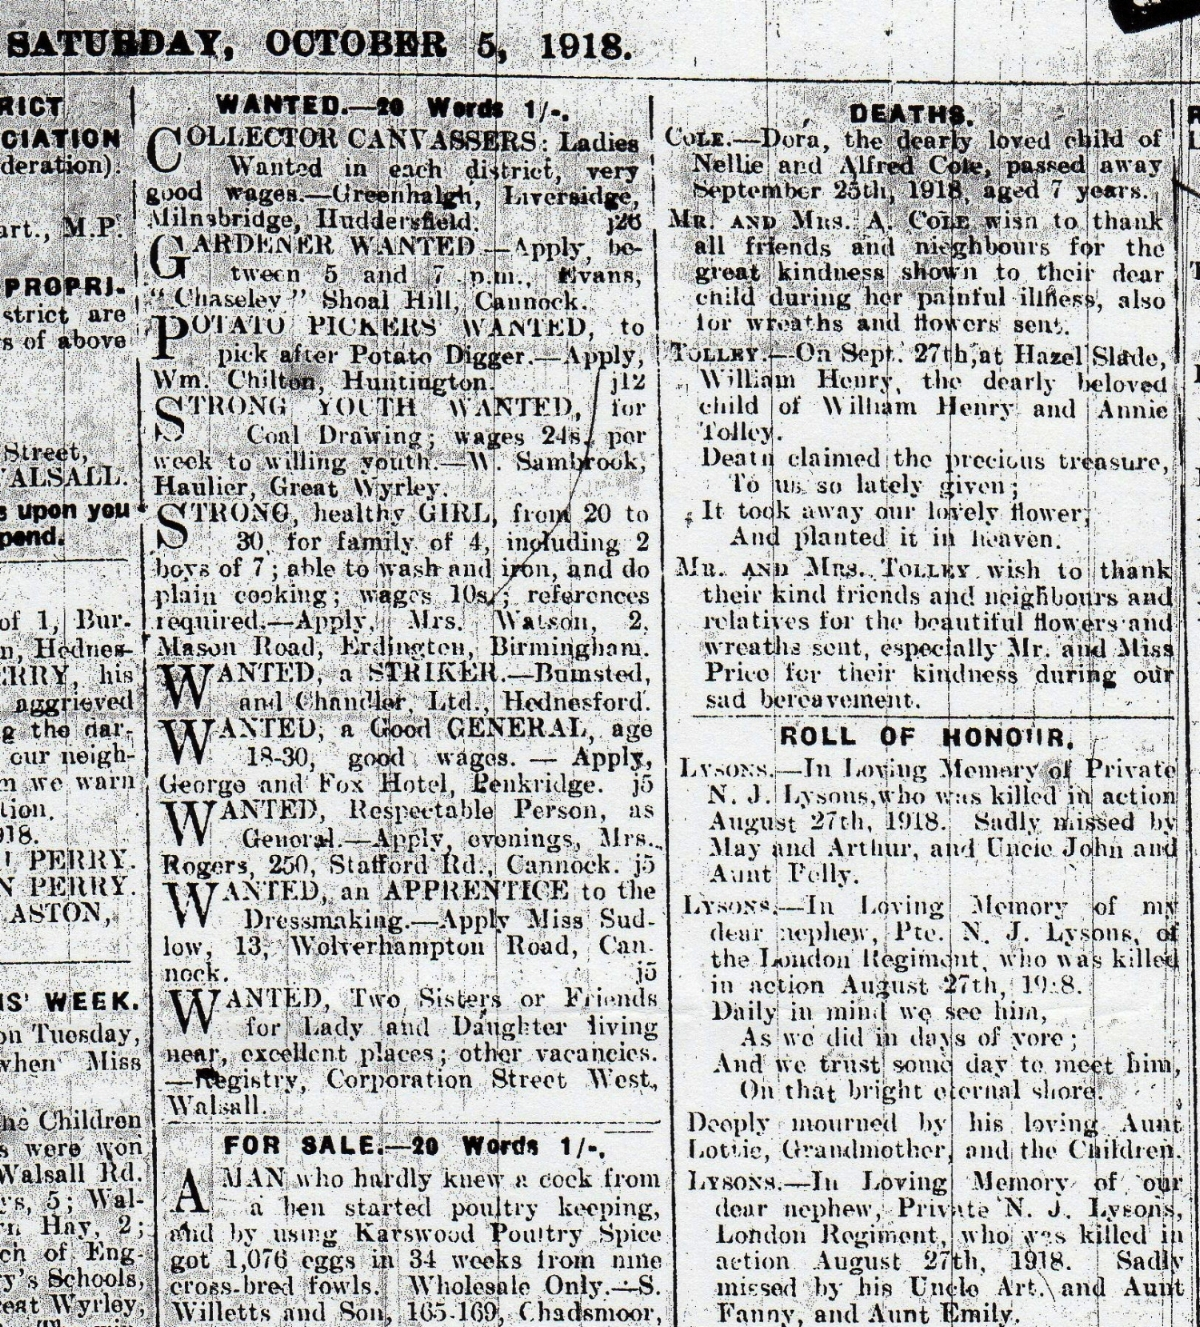 Family notices from the 5 October 1918 edition of the Cannock Advertiser